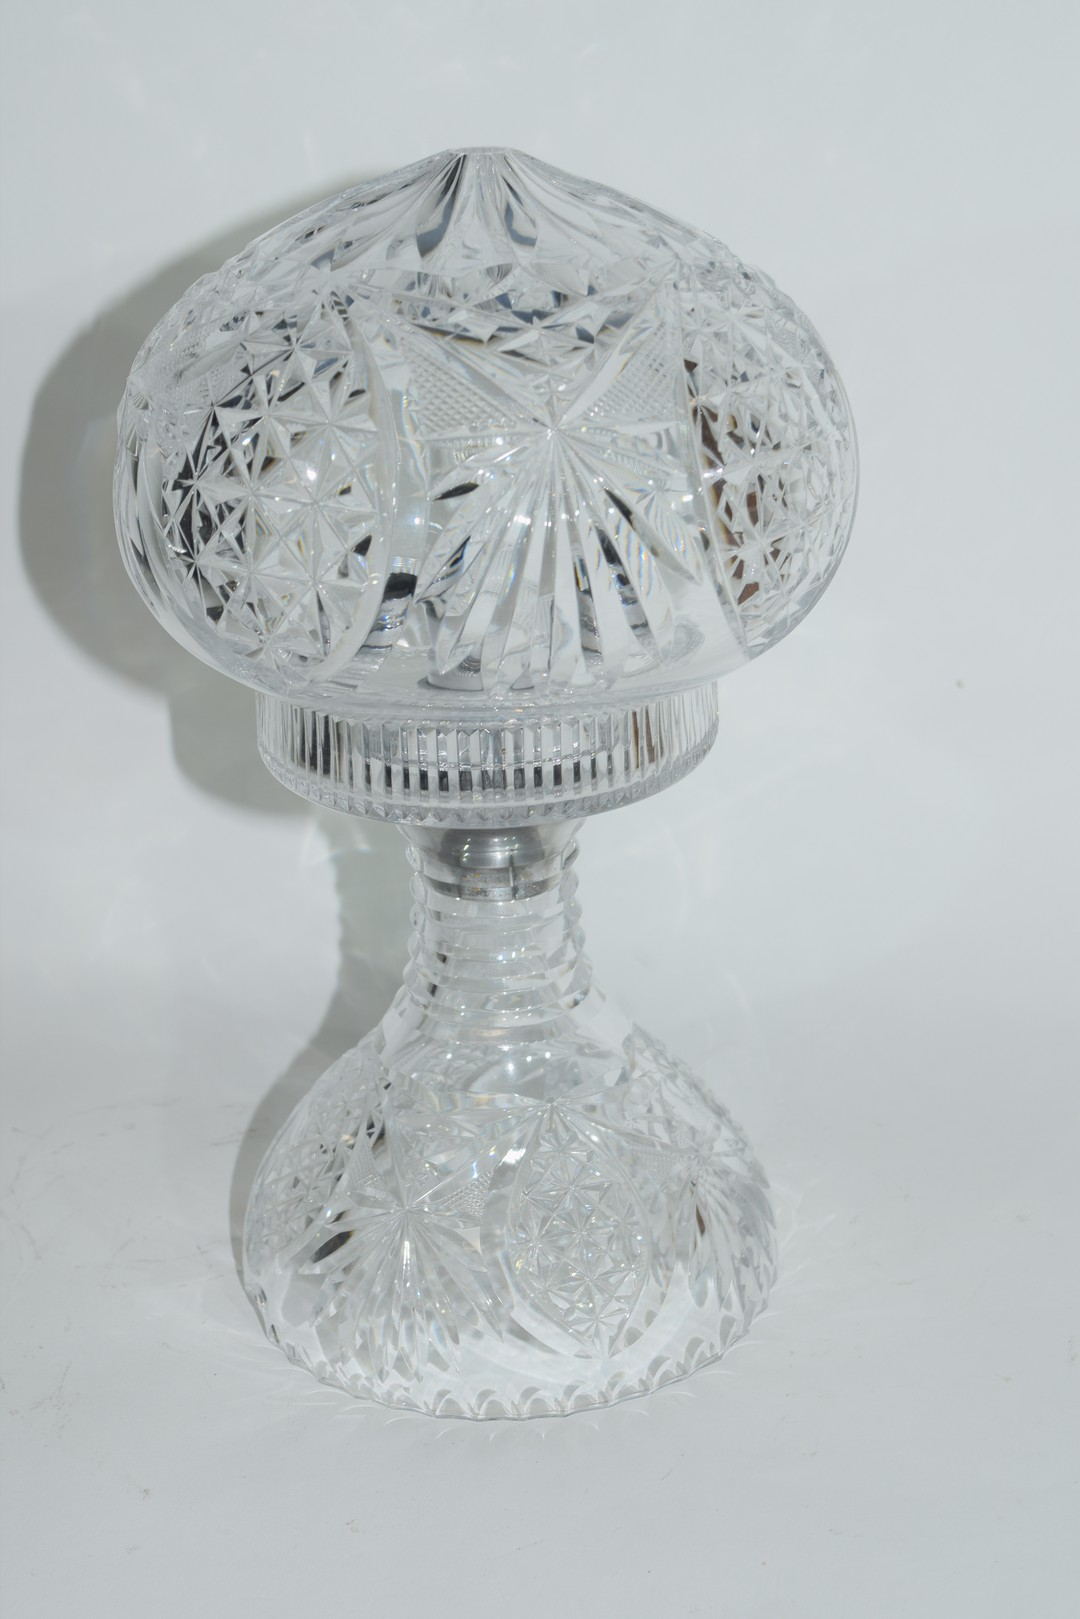 Cut glass lamp and shade - Image 2 of 5